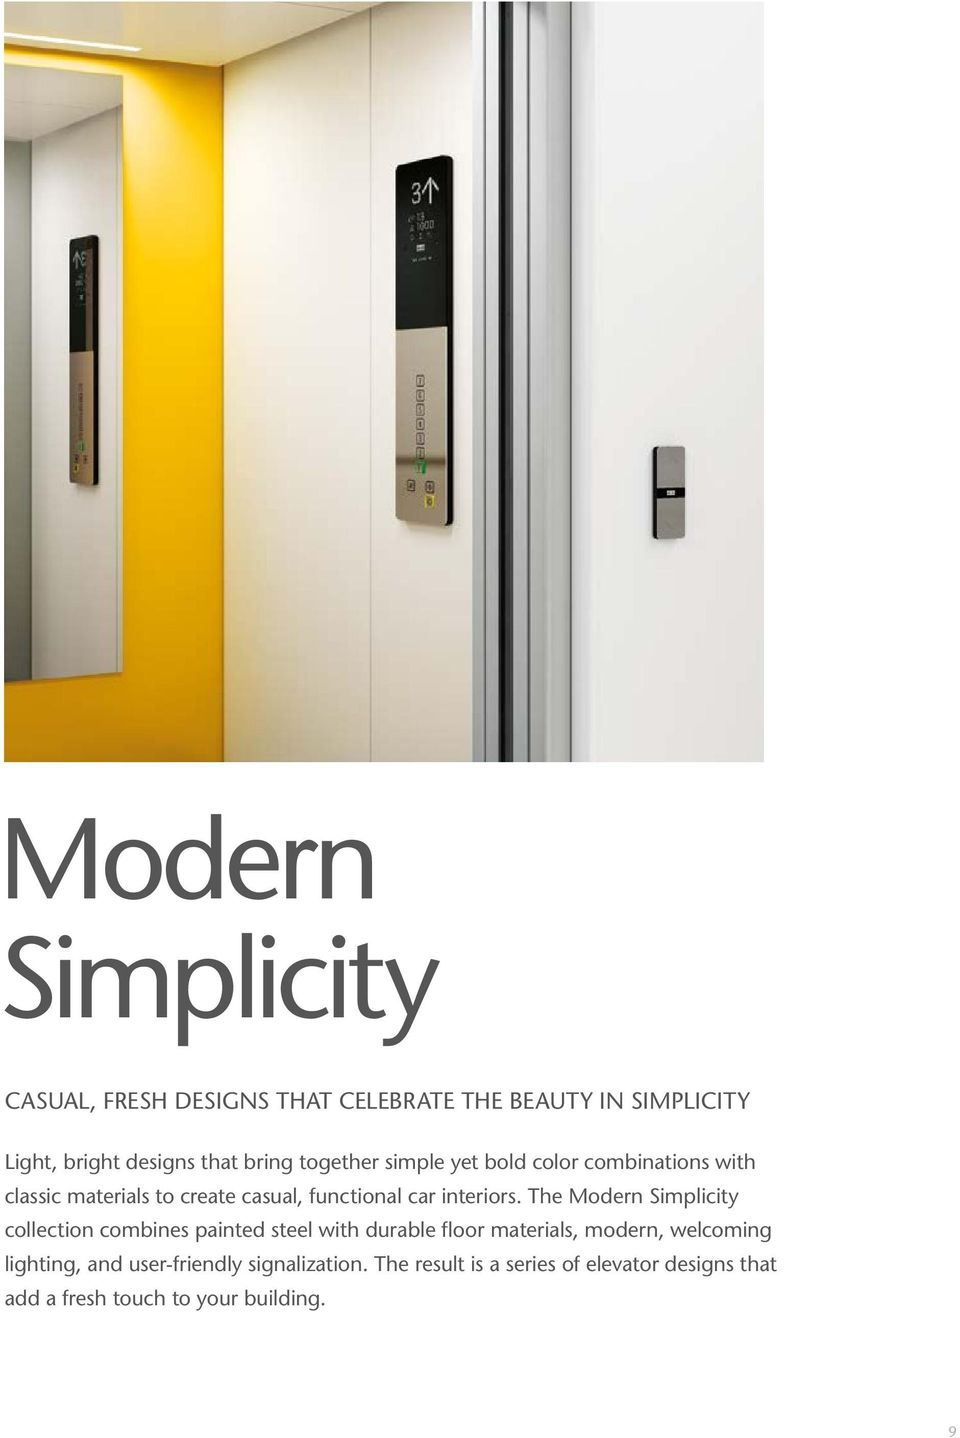 The Modern Simplicity collection combines painted steel with durable floor materials, modern, welcoming lighting,